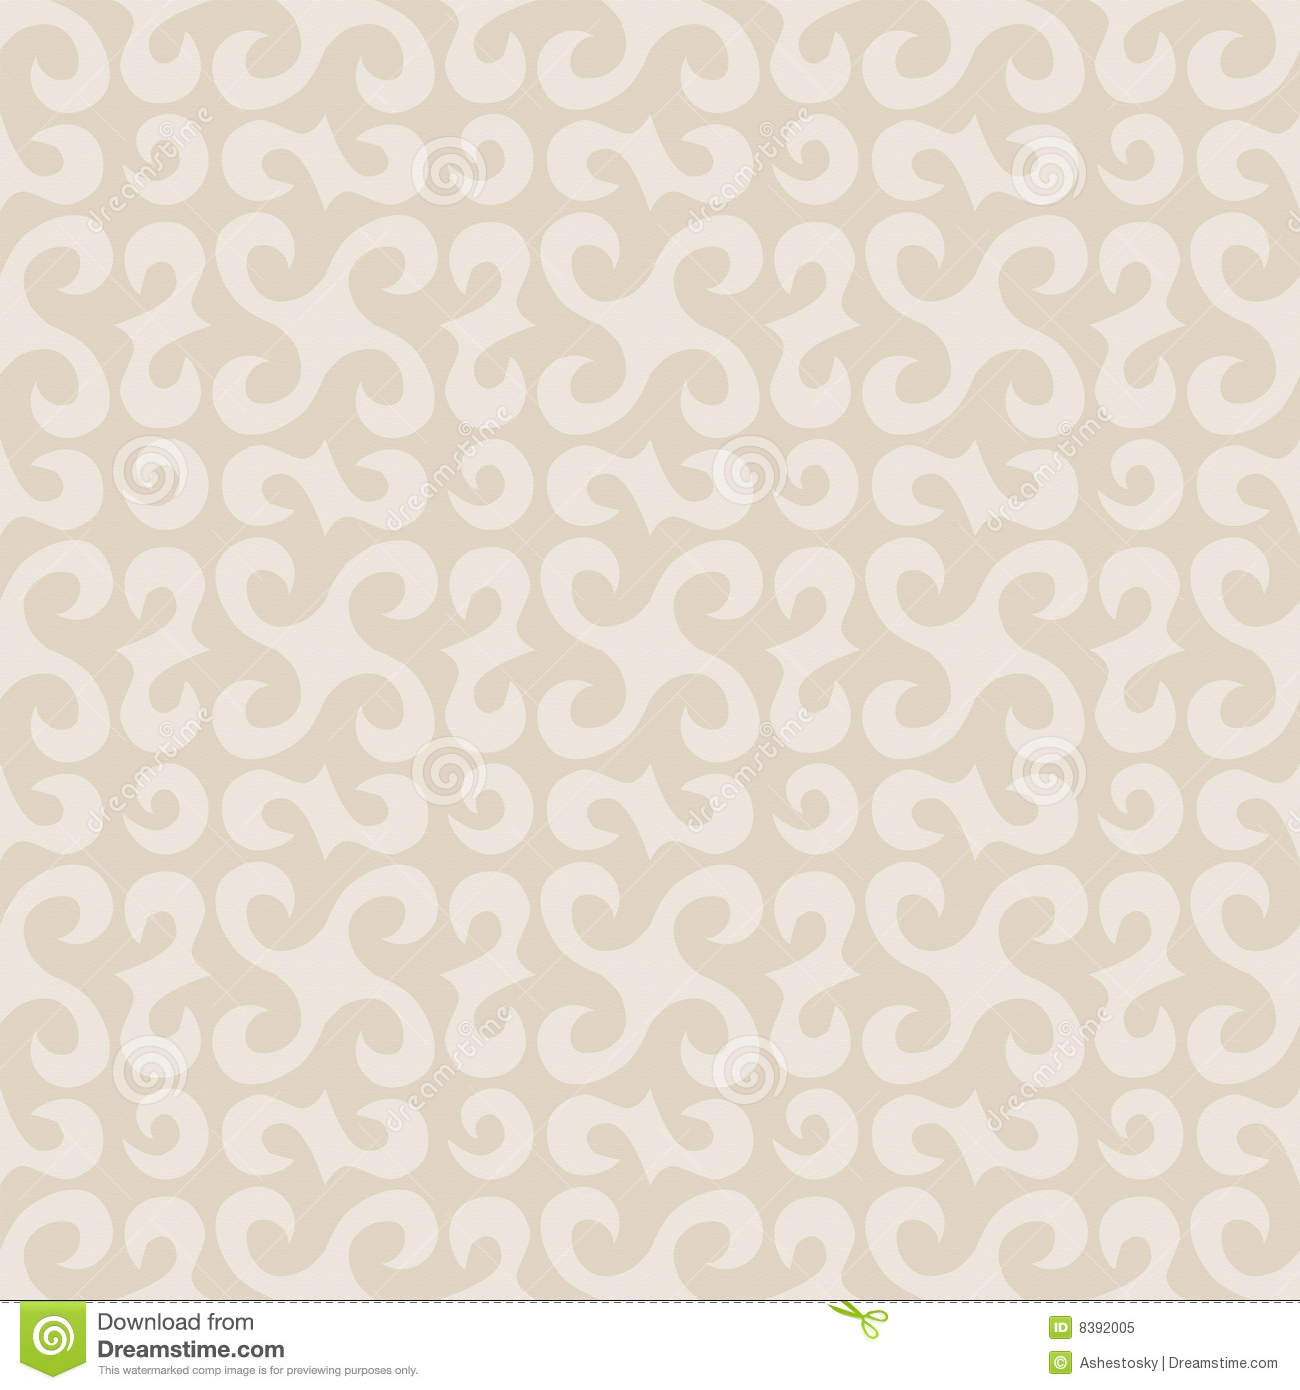 More similar stock images of ` Fabric tile wallpaper texture `